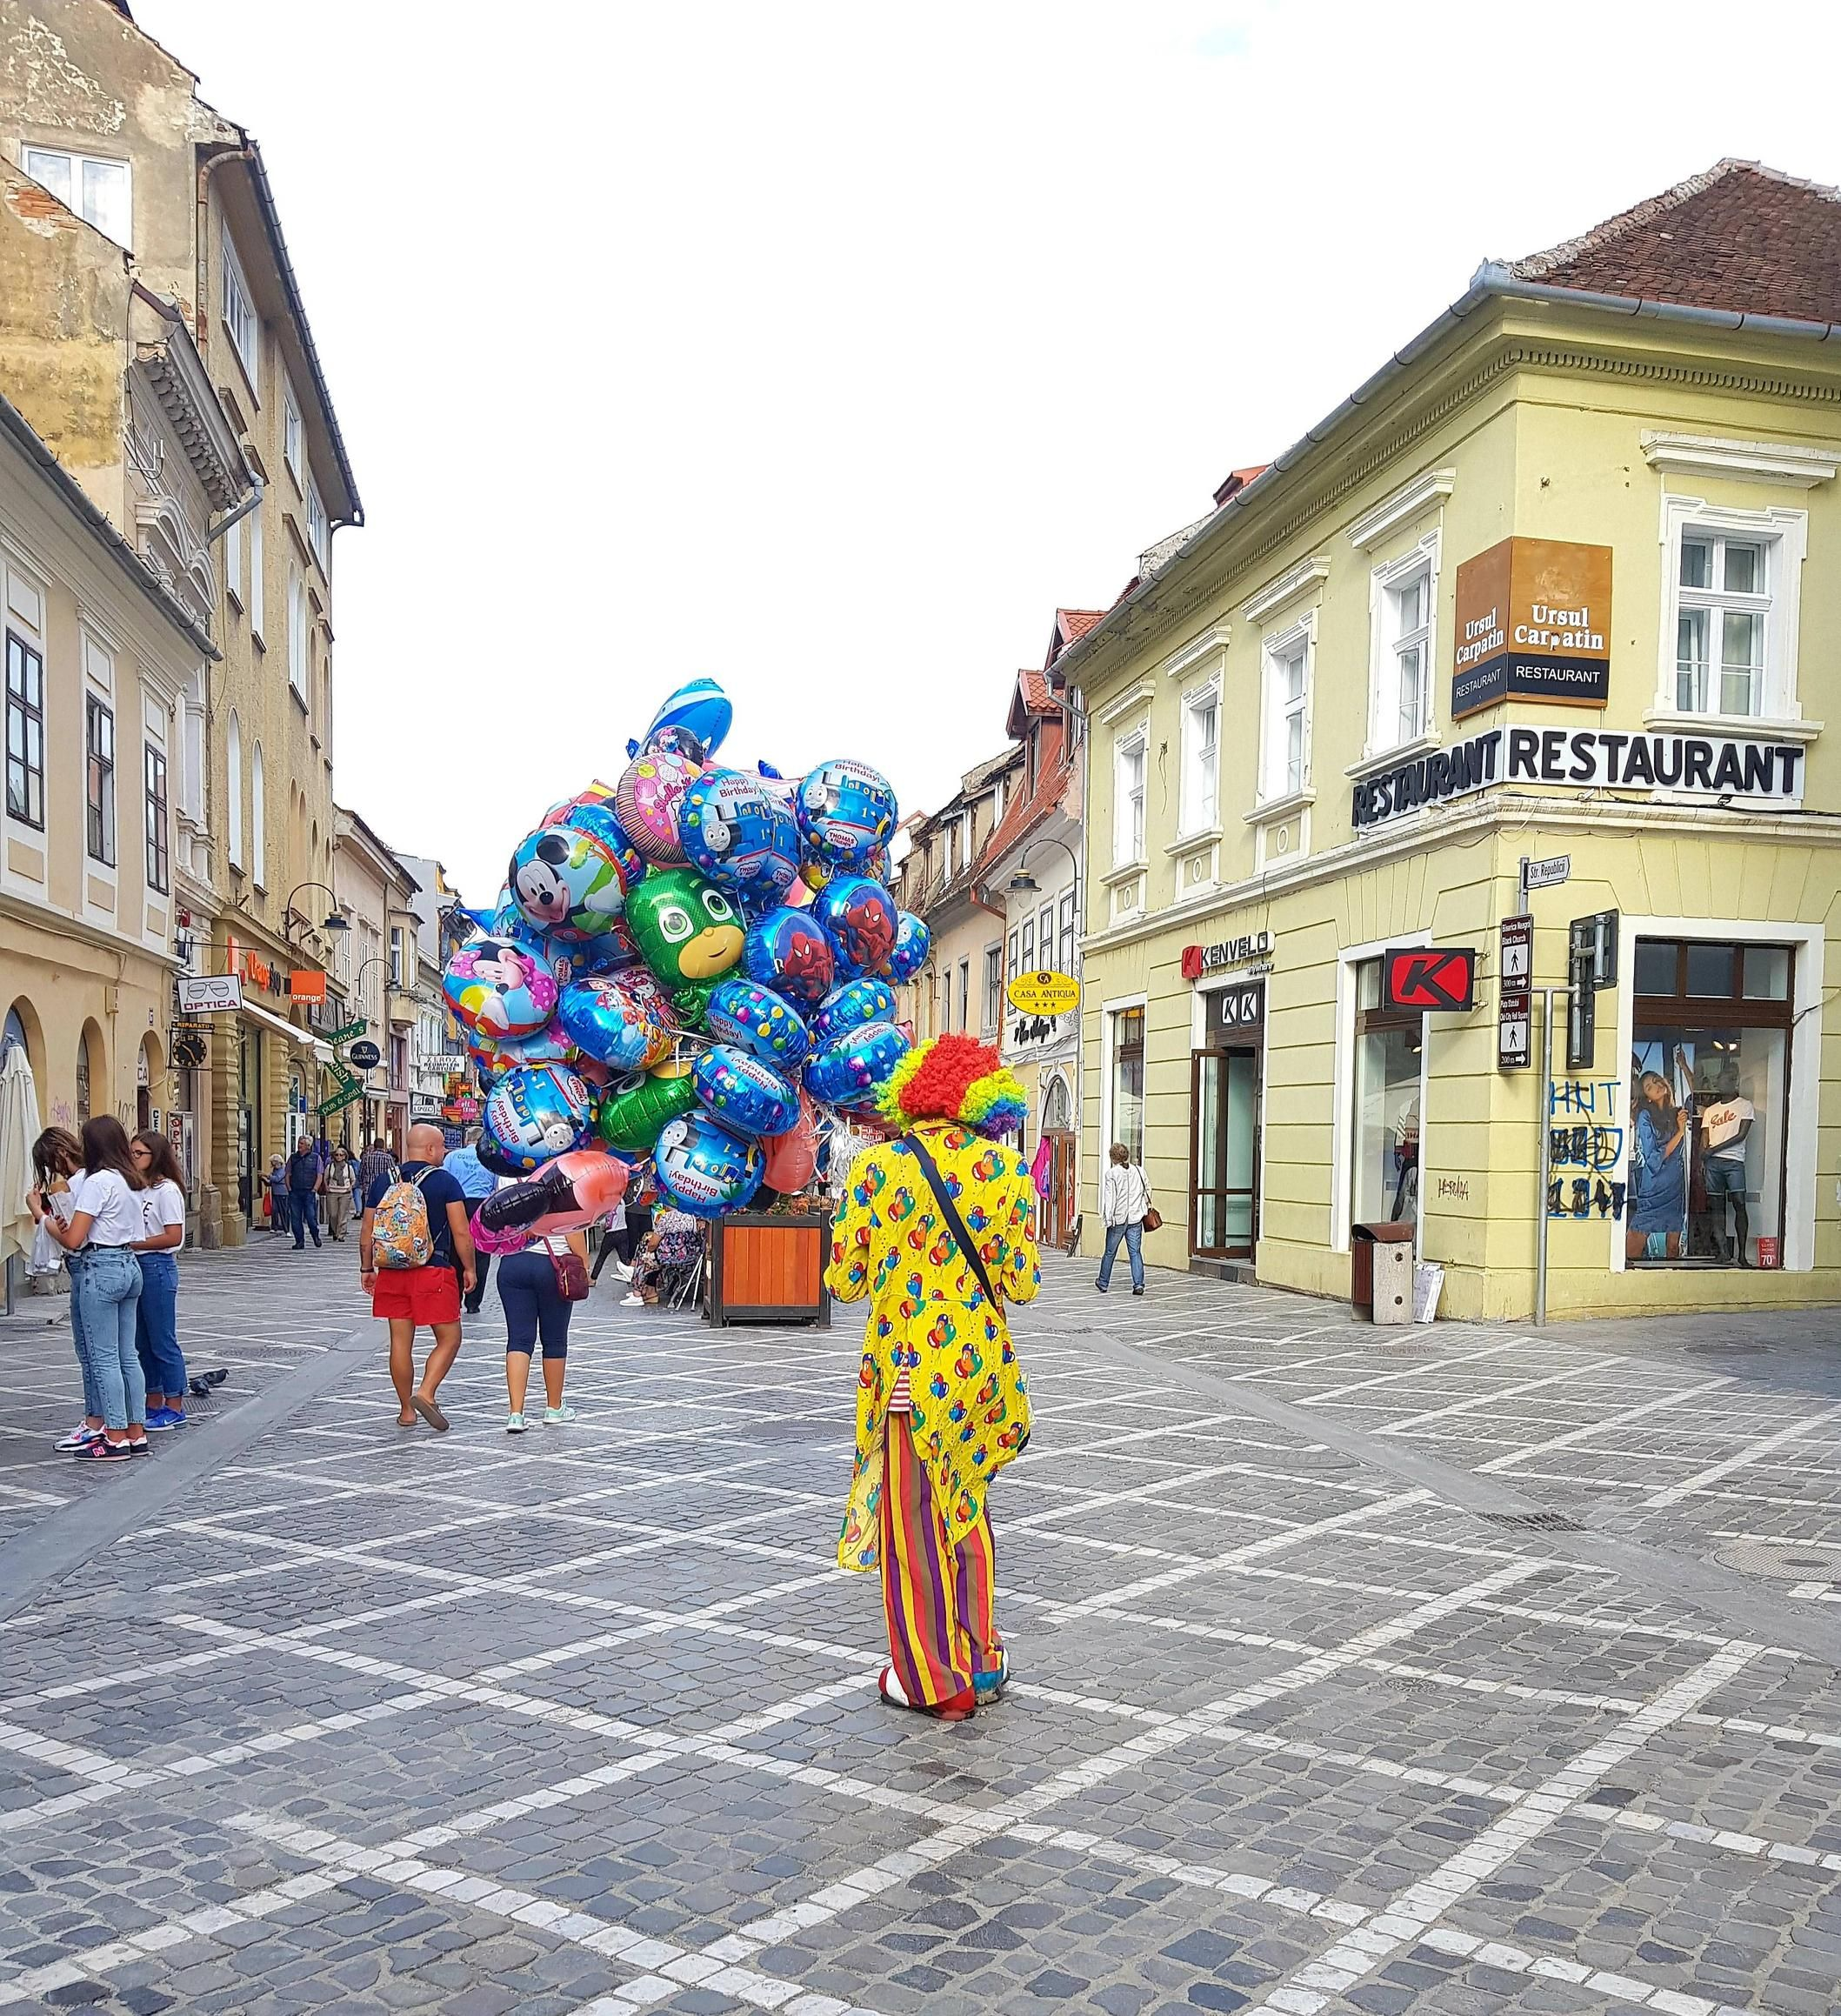 ITAP of a clown holding some balloons#PHOTO #CAPTURE #NATURE #INCREDIBLE